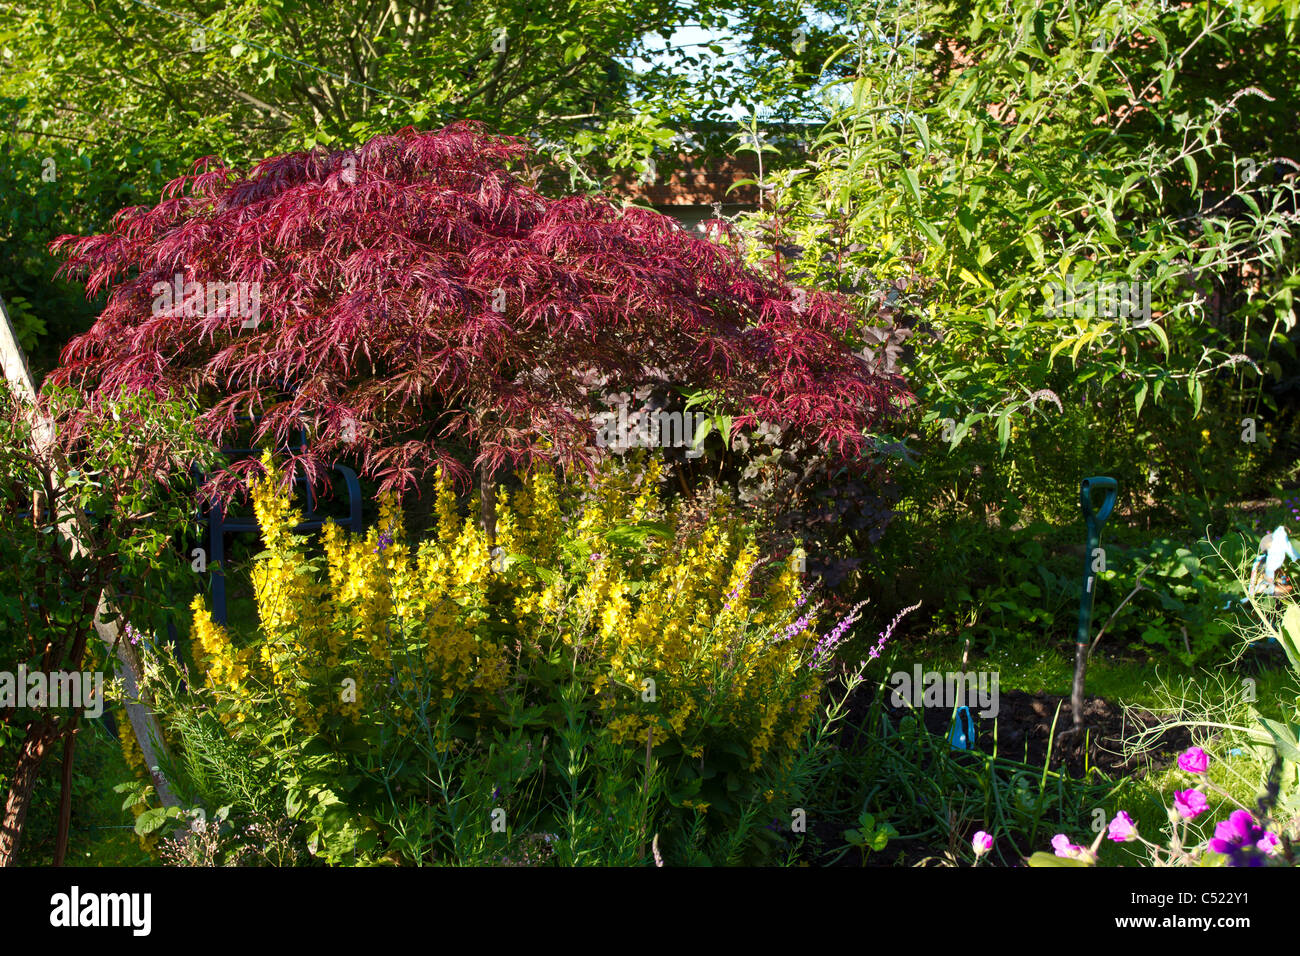 Overgrown English Garden Packed With Flowers Shrubs And Trees